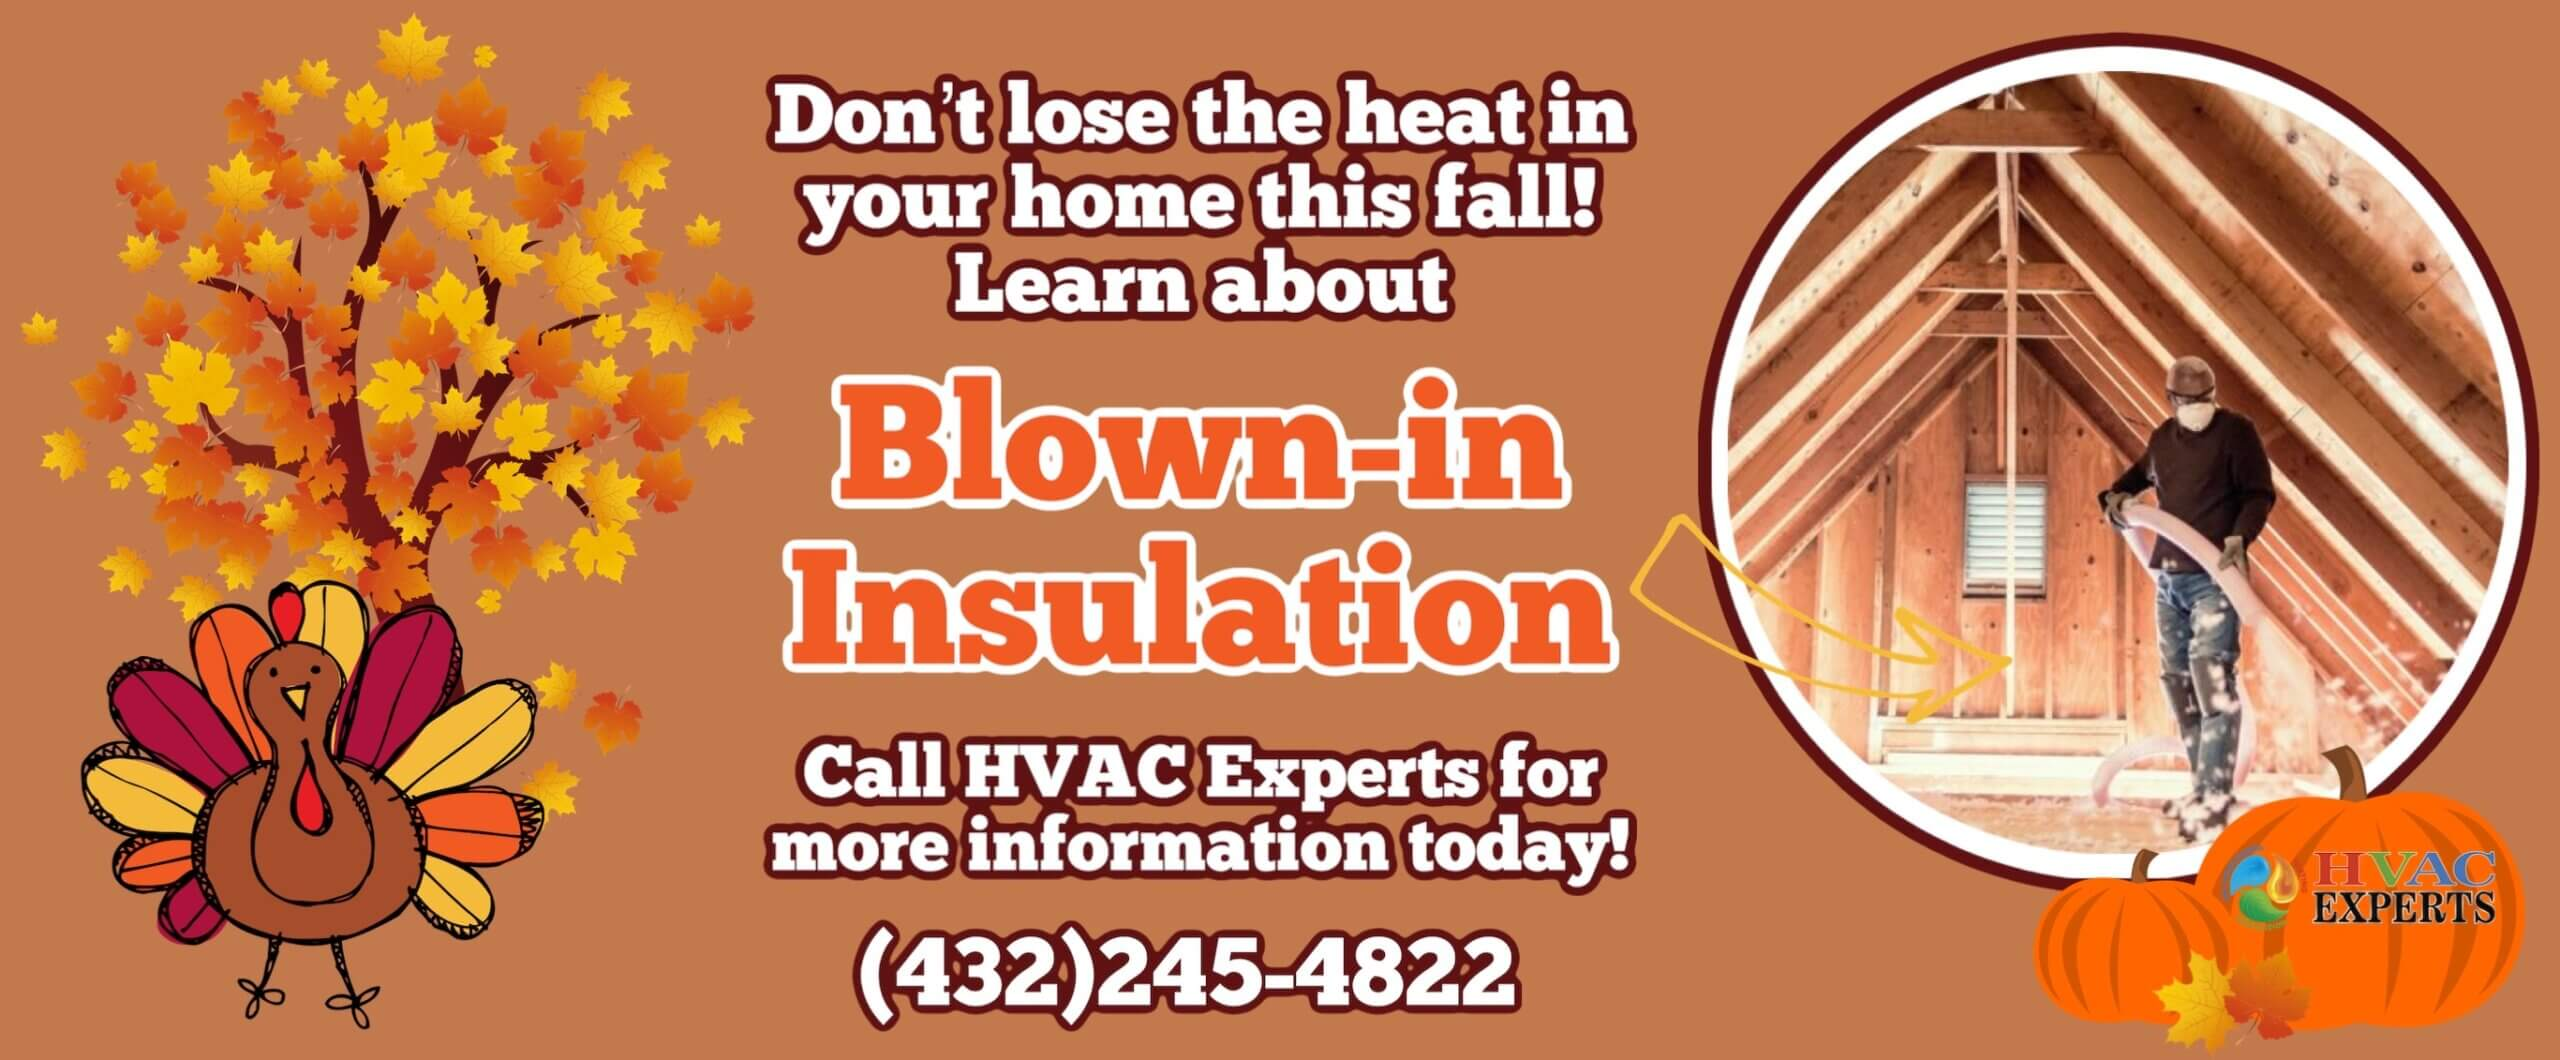 Keep your home warm with Blown-in insulation. Call HVAC Experts for more information!